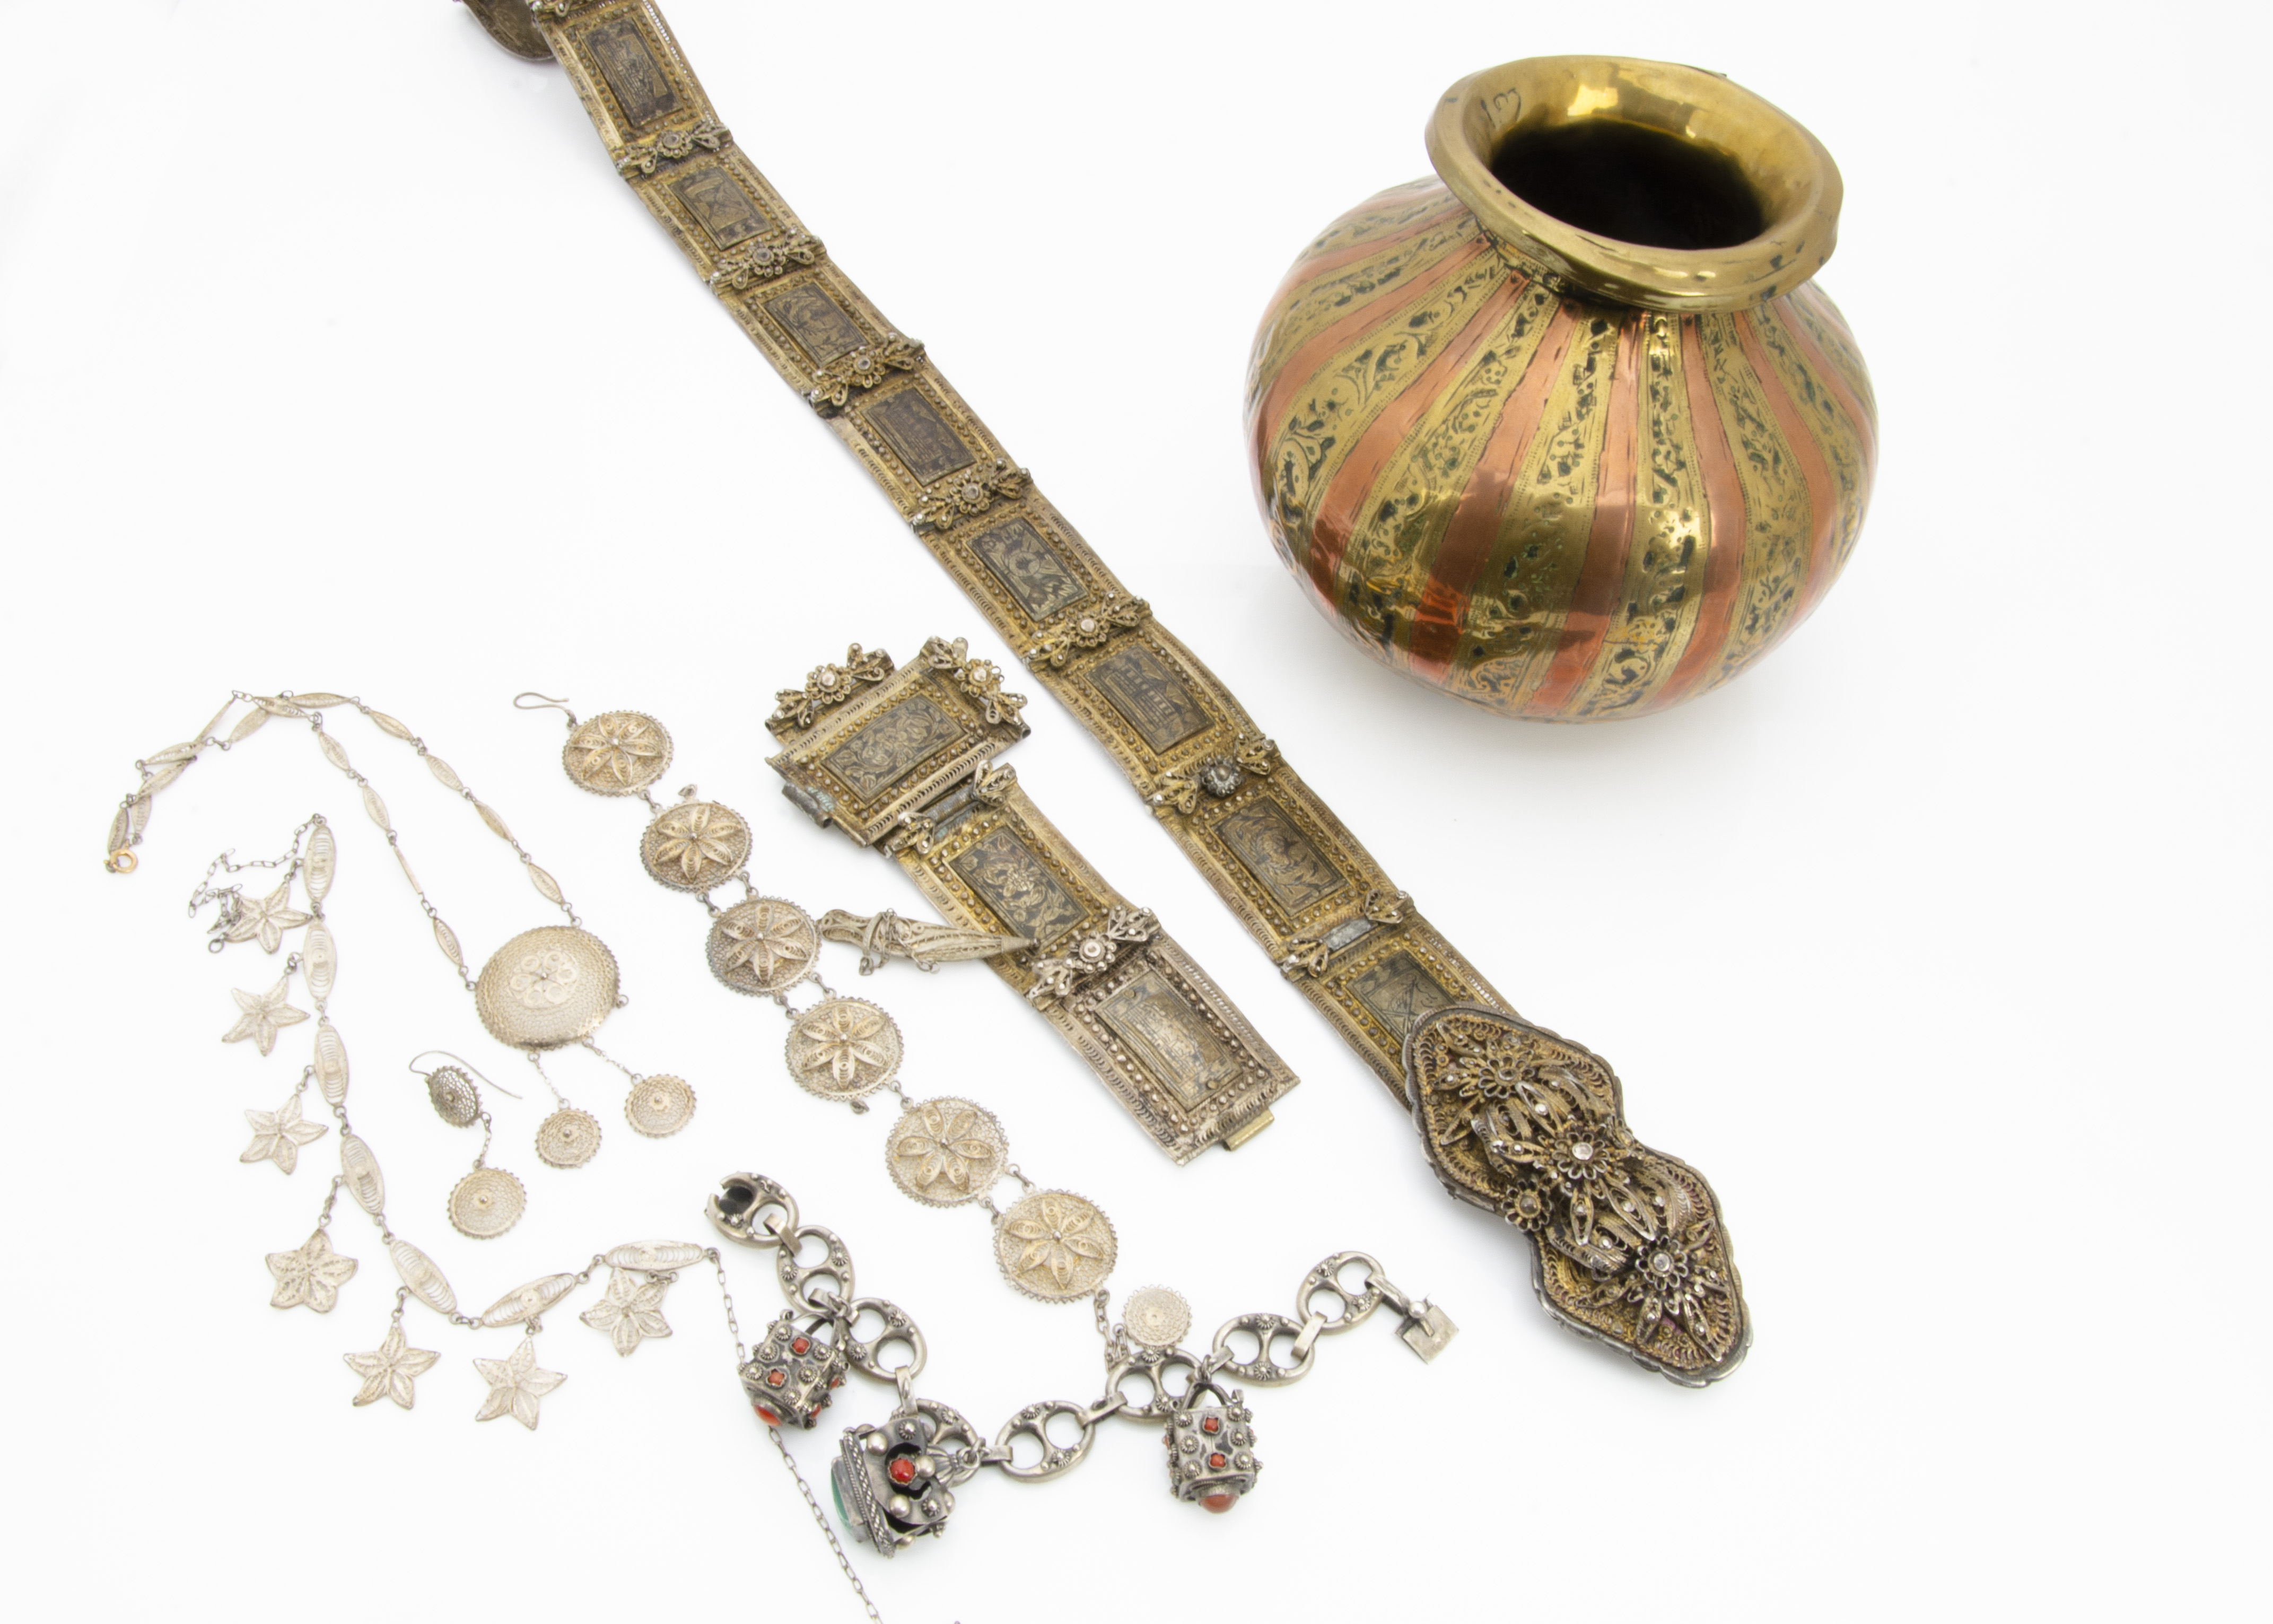 Lot 268 - A collection of Middle Eastern and Egyptian jewels, including a silver and silver gilt niello work